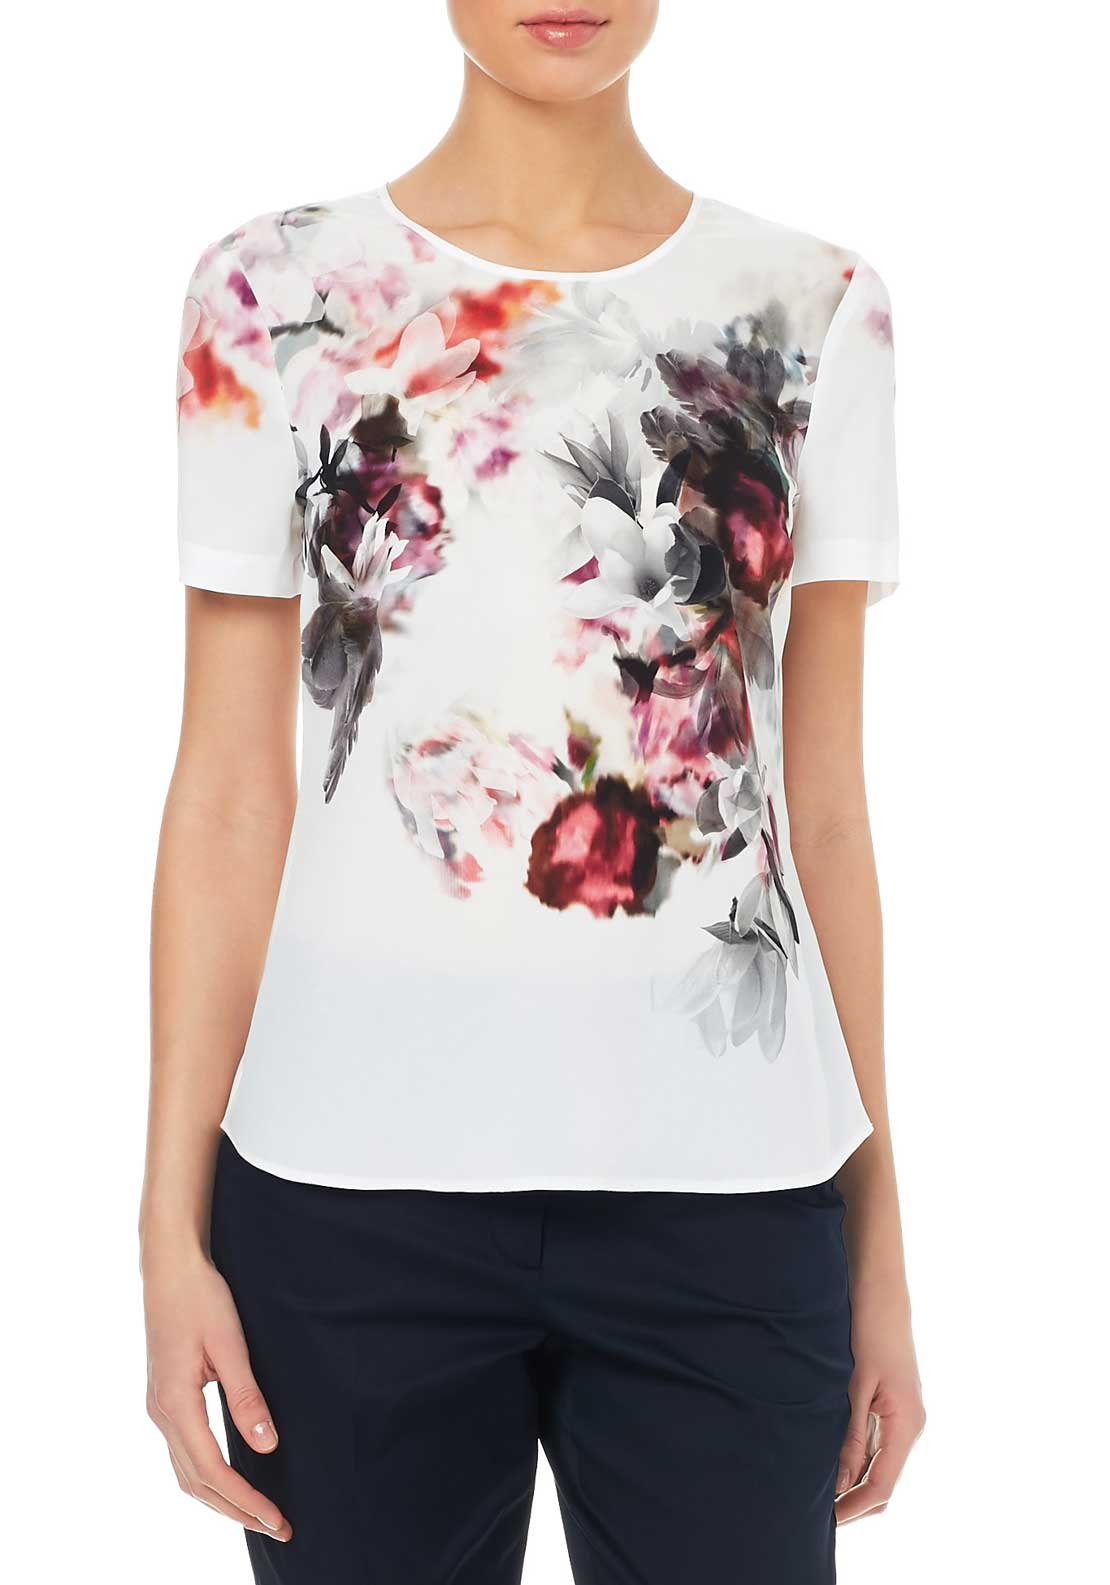 Gerry Weber Floral Print Top, Multi-Coloured